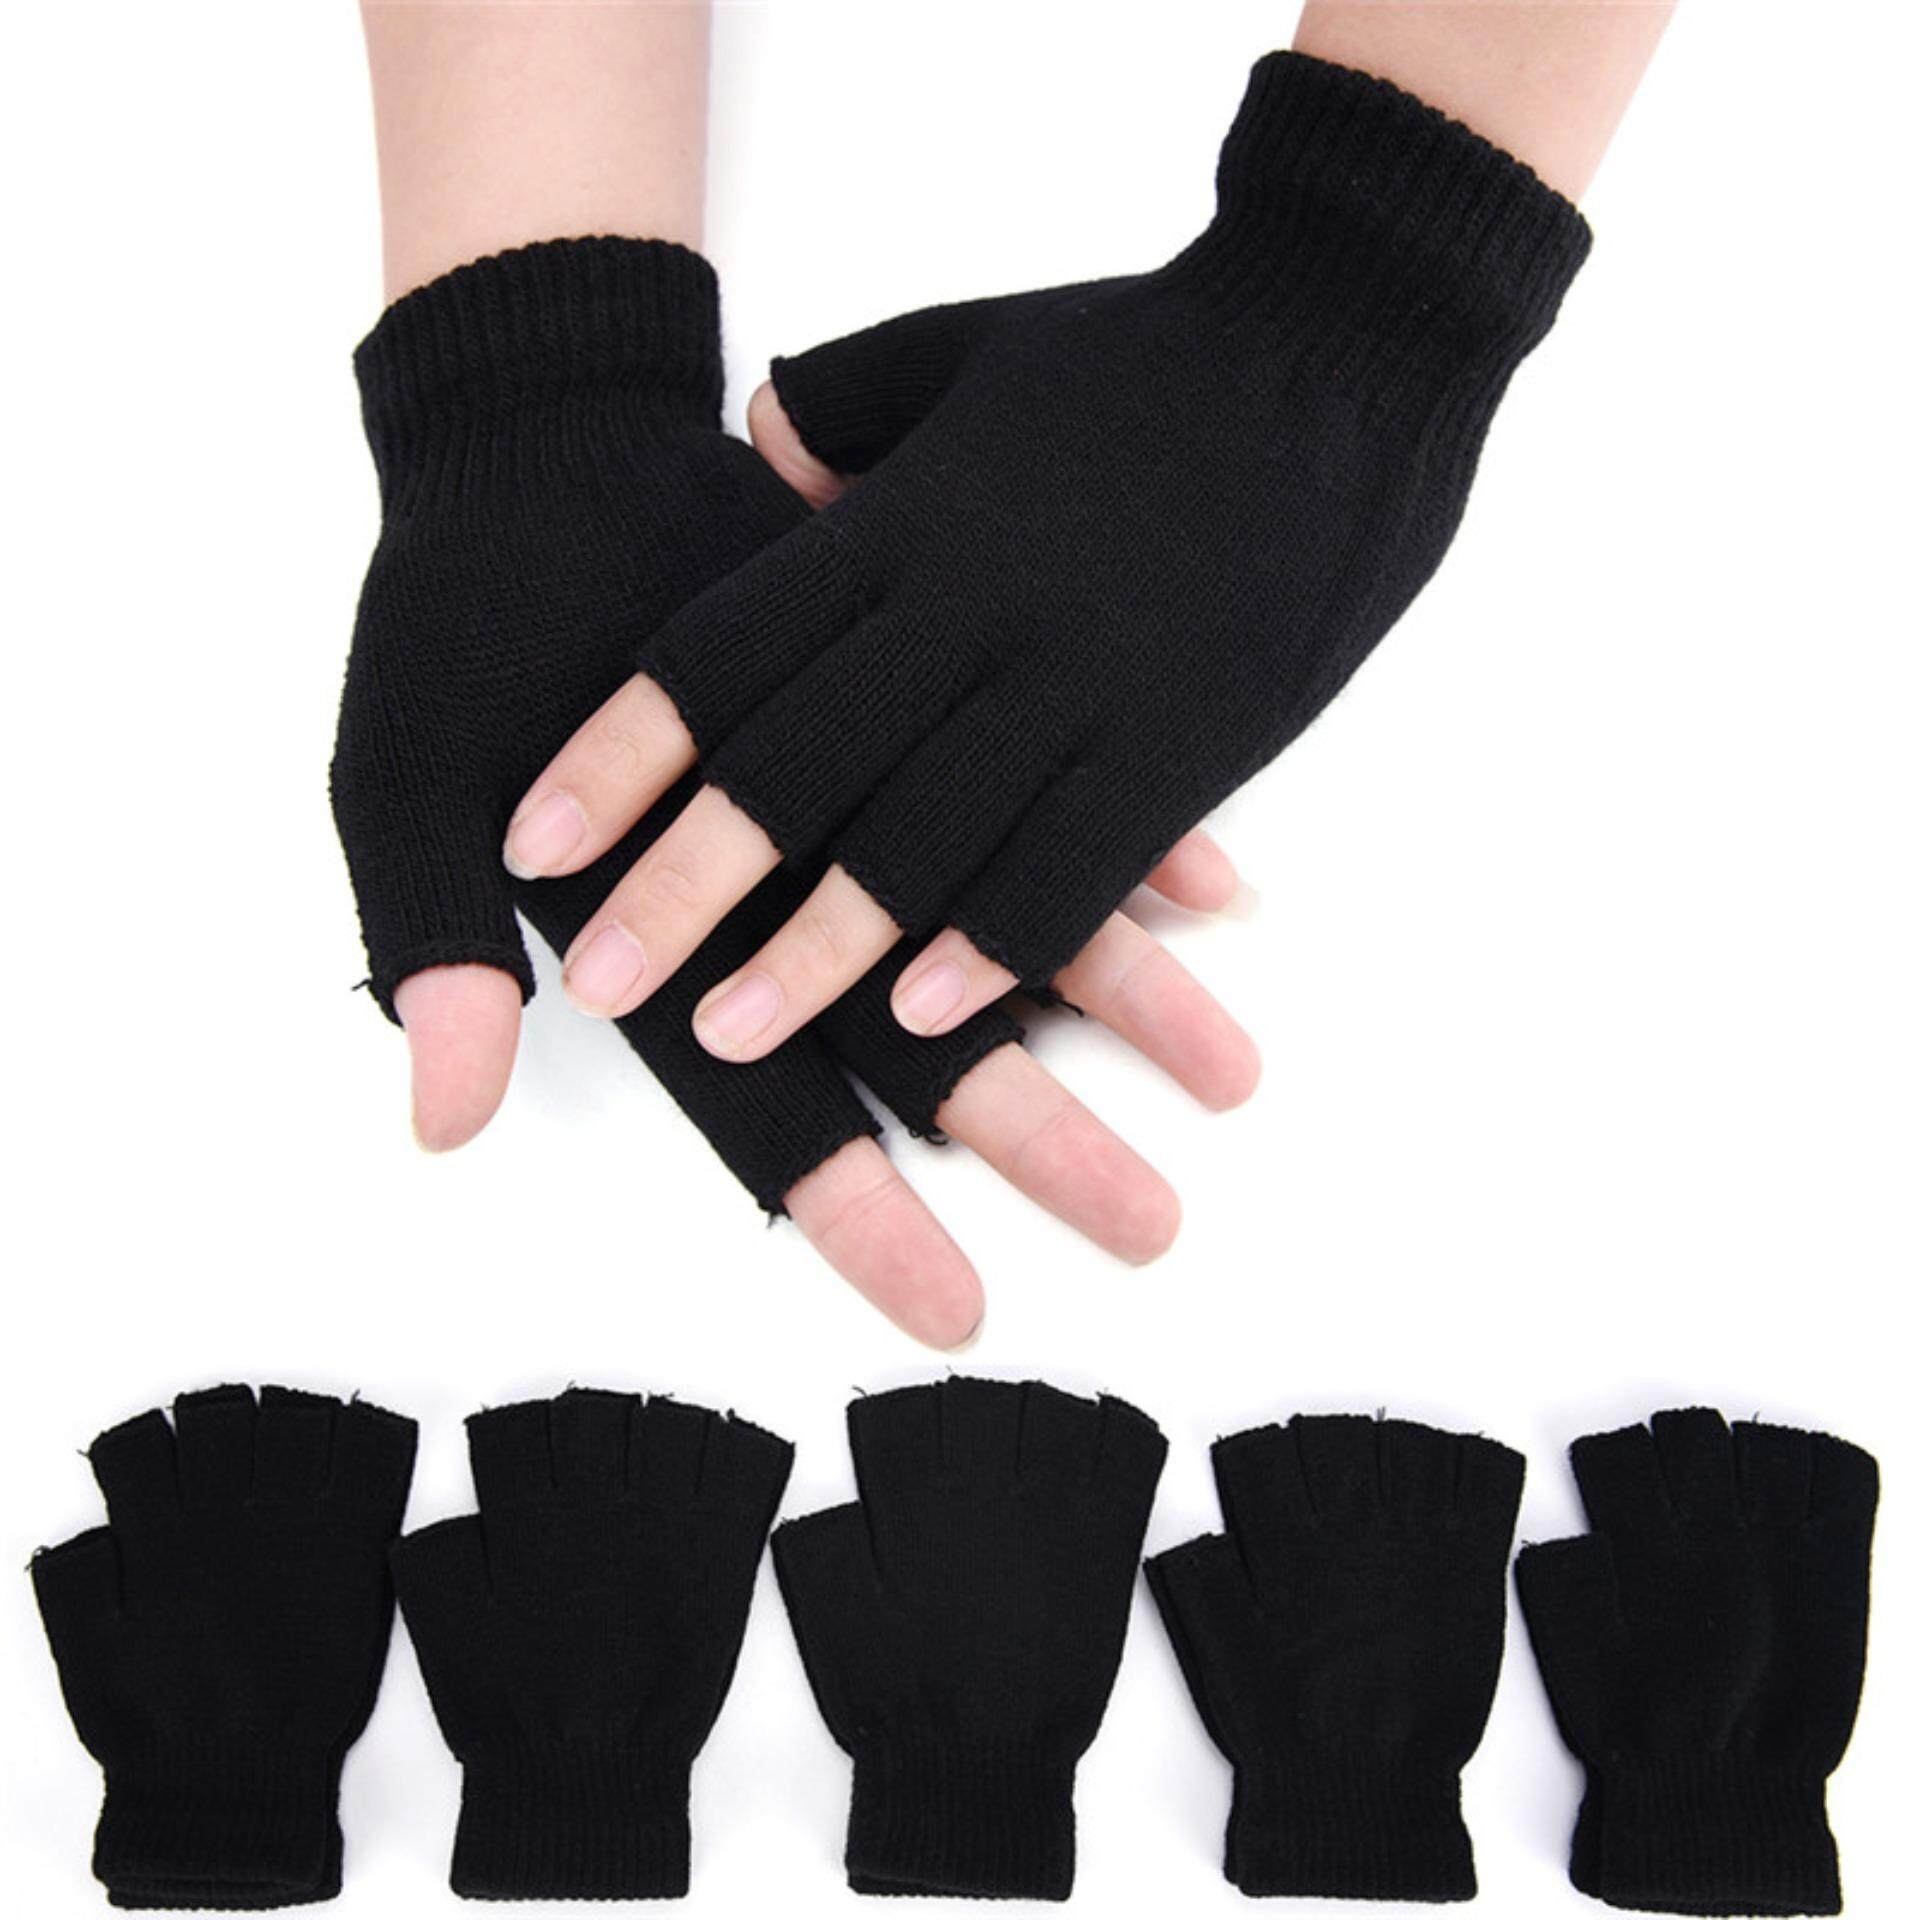 2019 Fashion Black Short Half Finger Fingerless Wool Knit Wrist Glove Winter Warm Gloves Workout For Women And Men To Have A Unique National Style Back To Search Resultsapparel Accessories